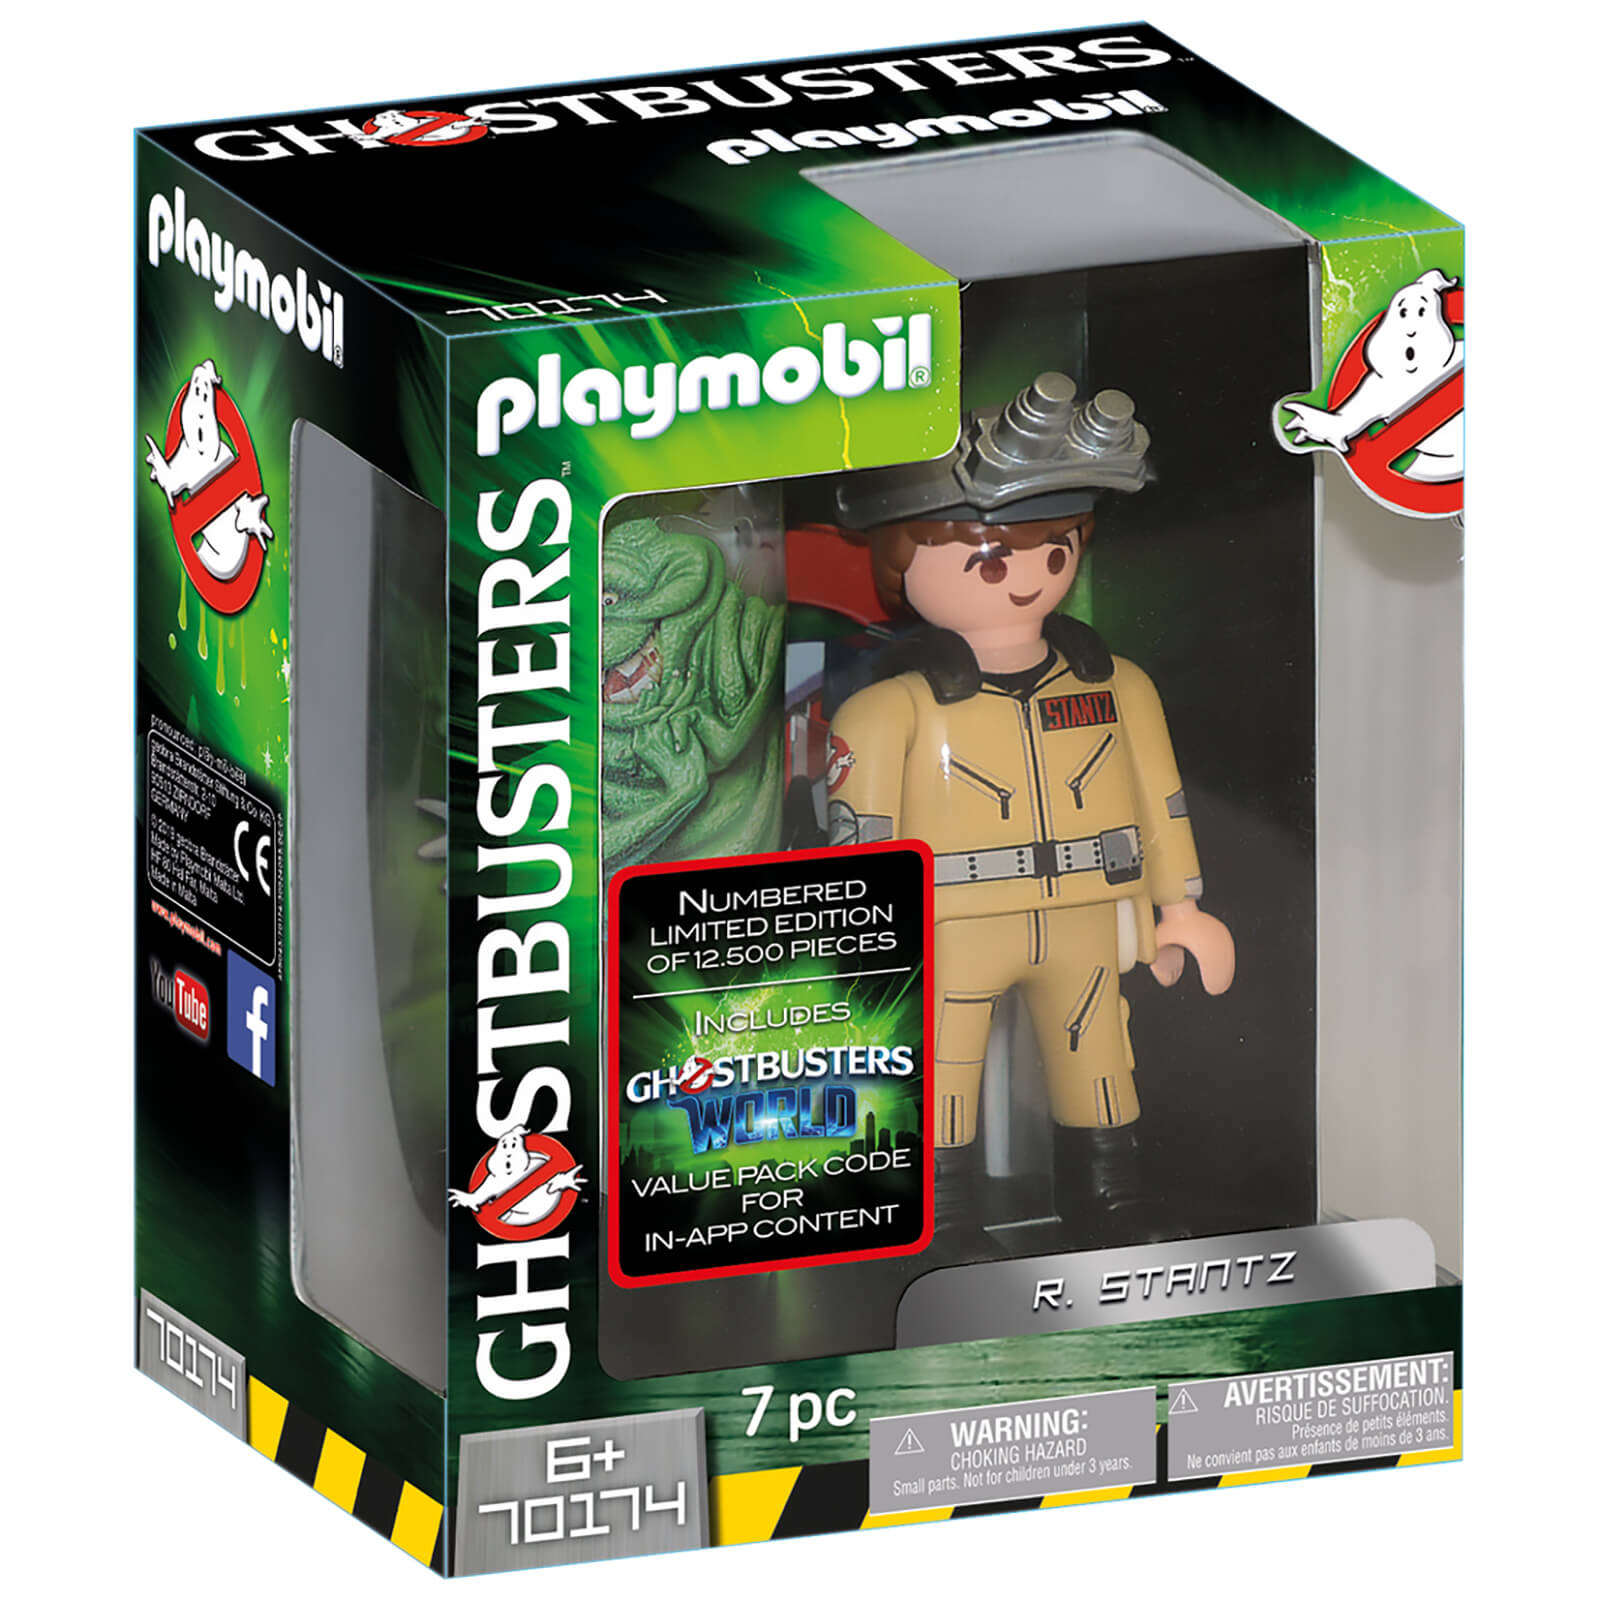 Playmobil Ghostbusters Collectors Edition R. Stantz   Limited And Individually Numbered (70174)